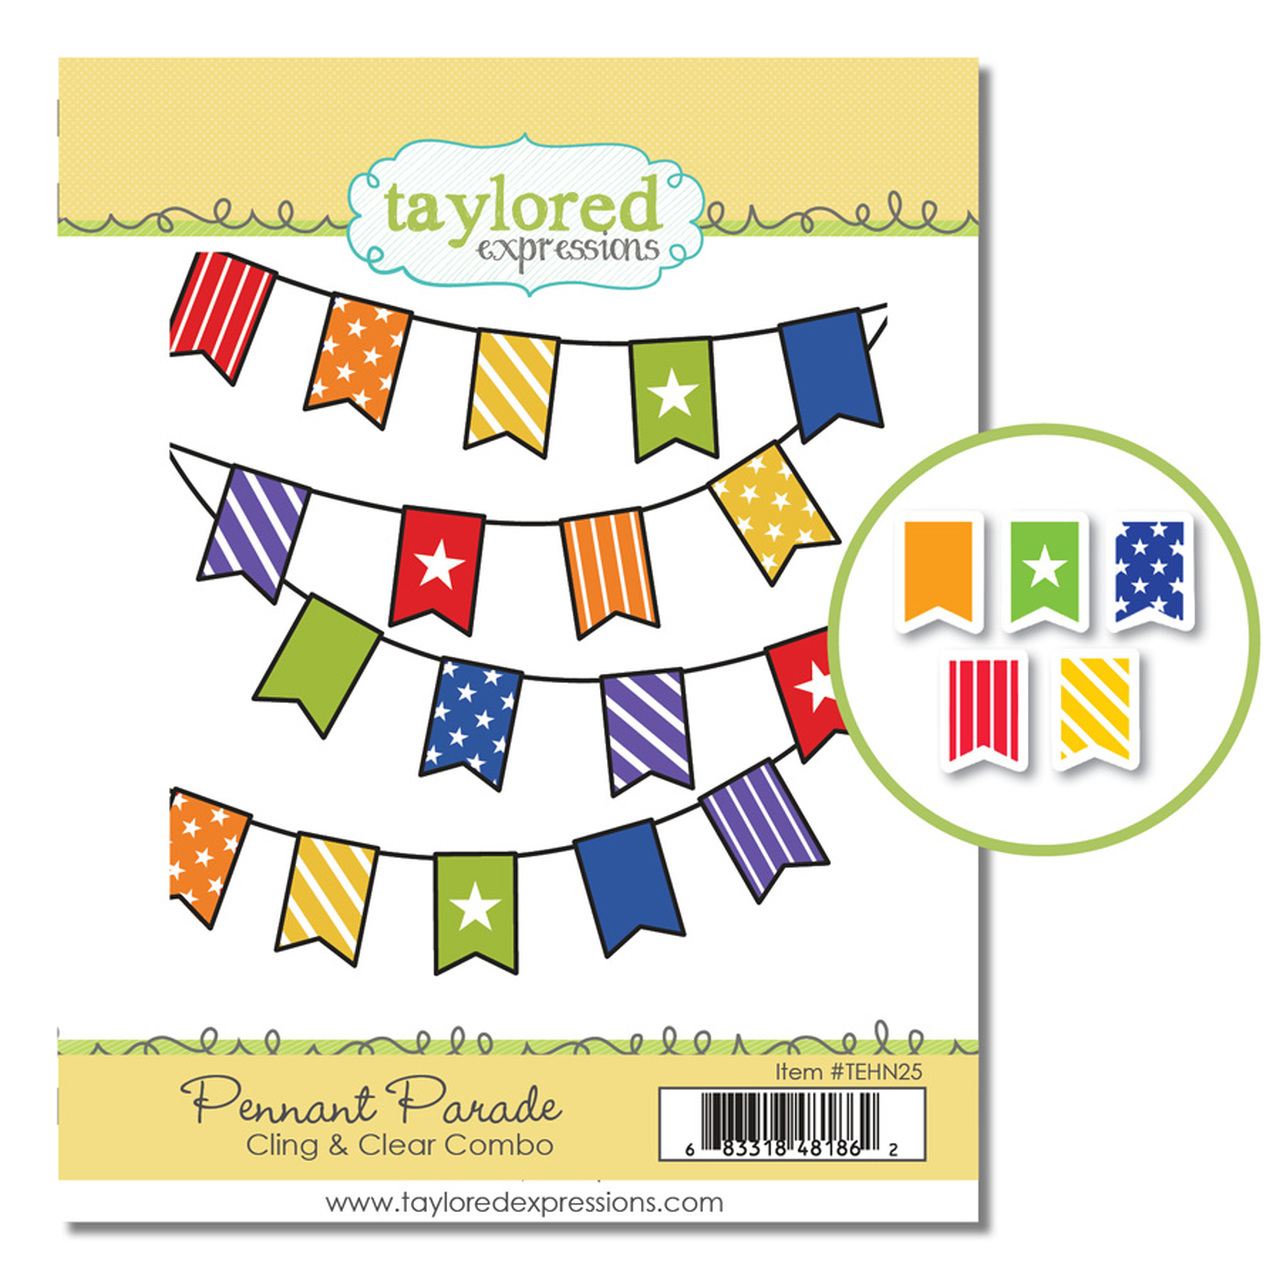 *NEW* - Taylored Expression - PENNANT PARADE CLING & CLEAR COMBO